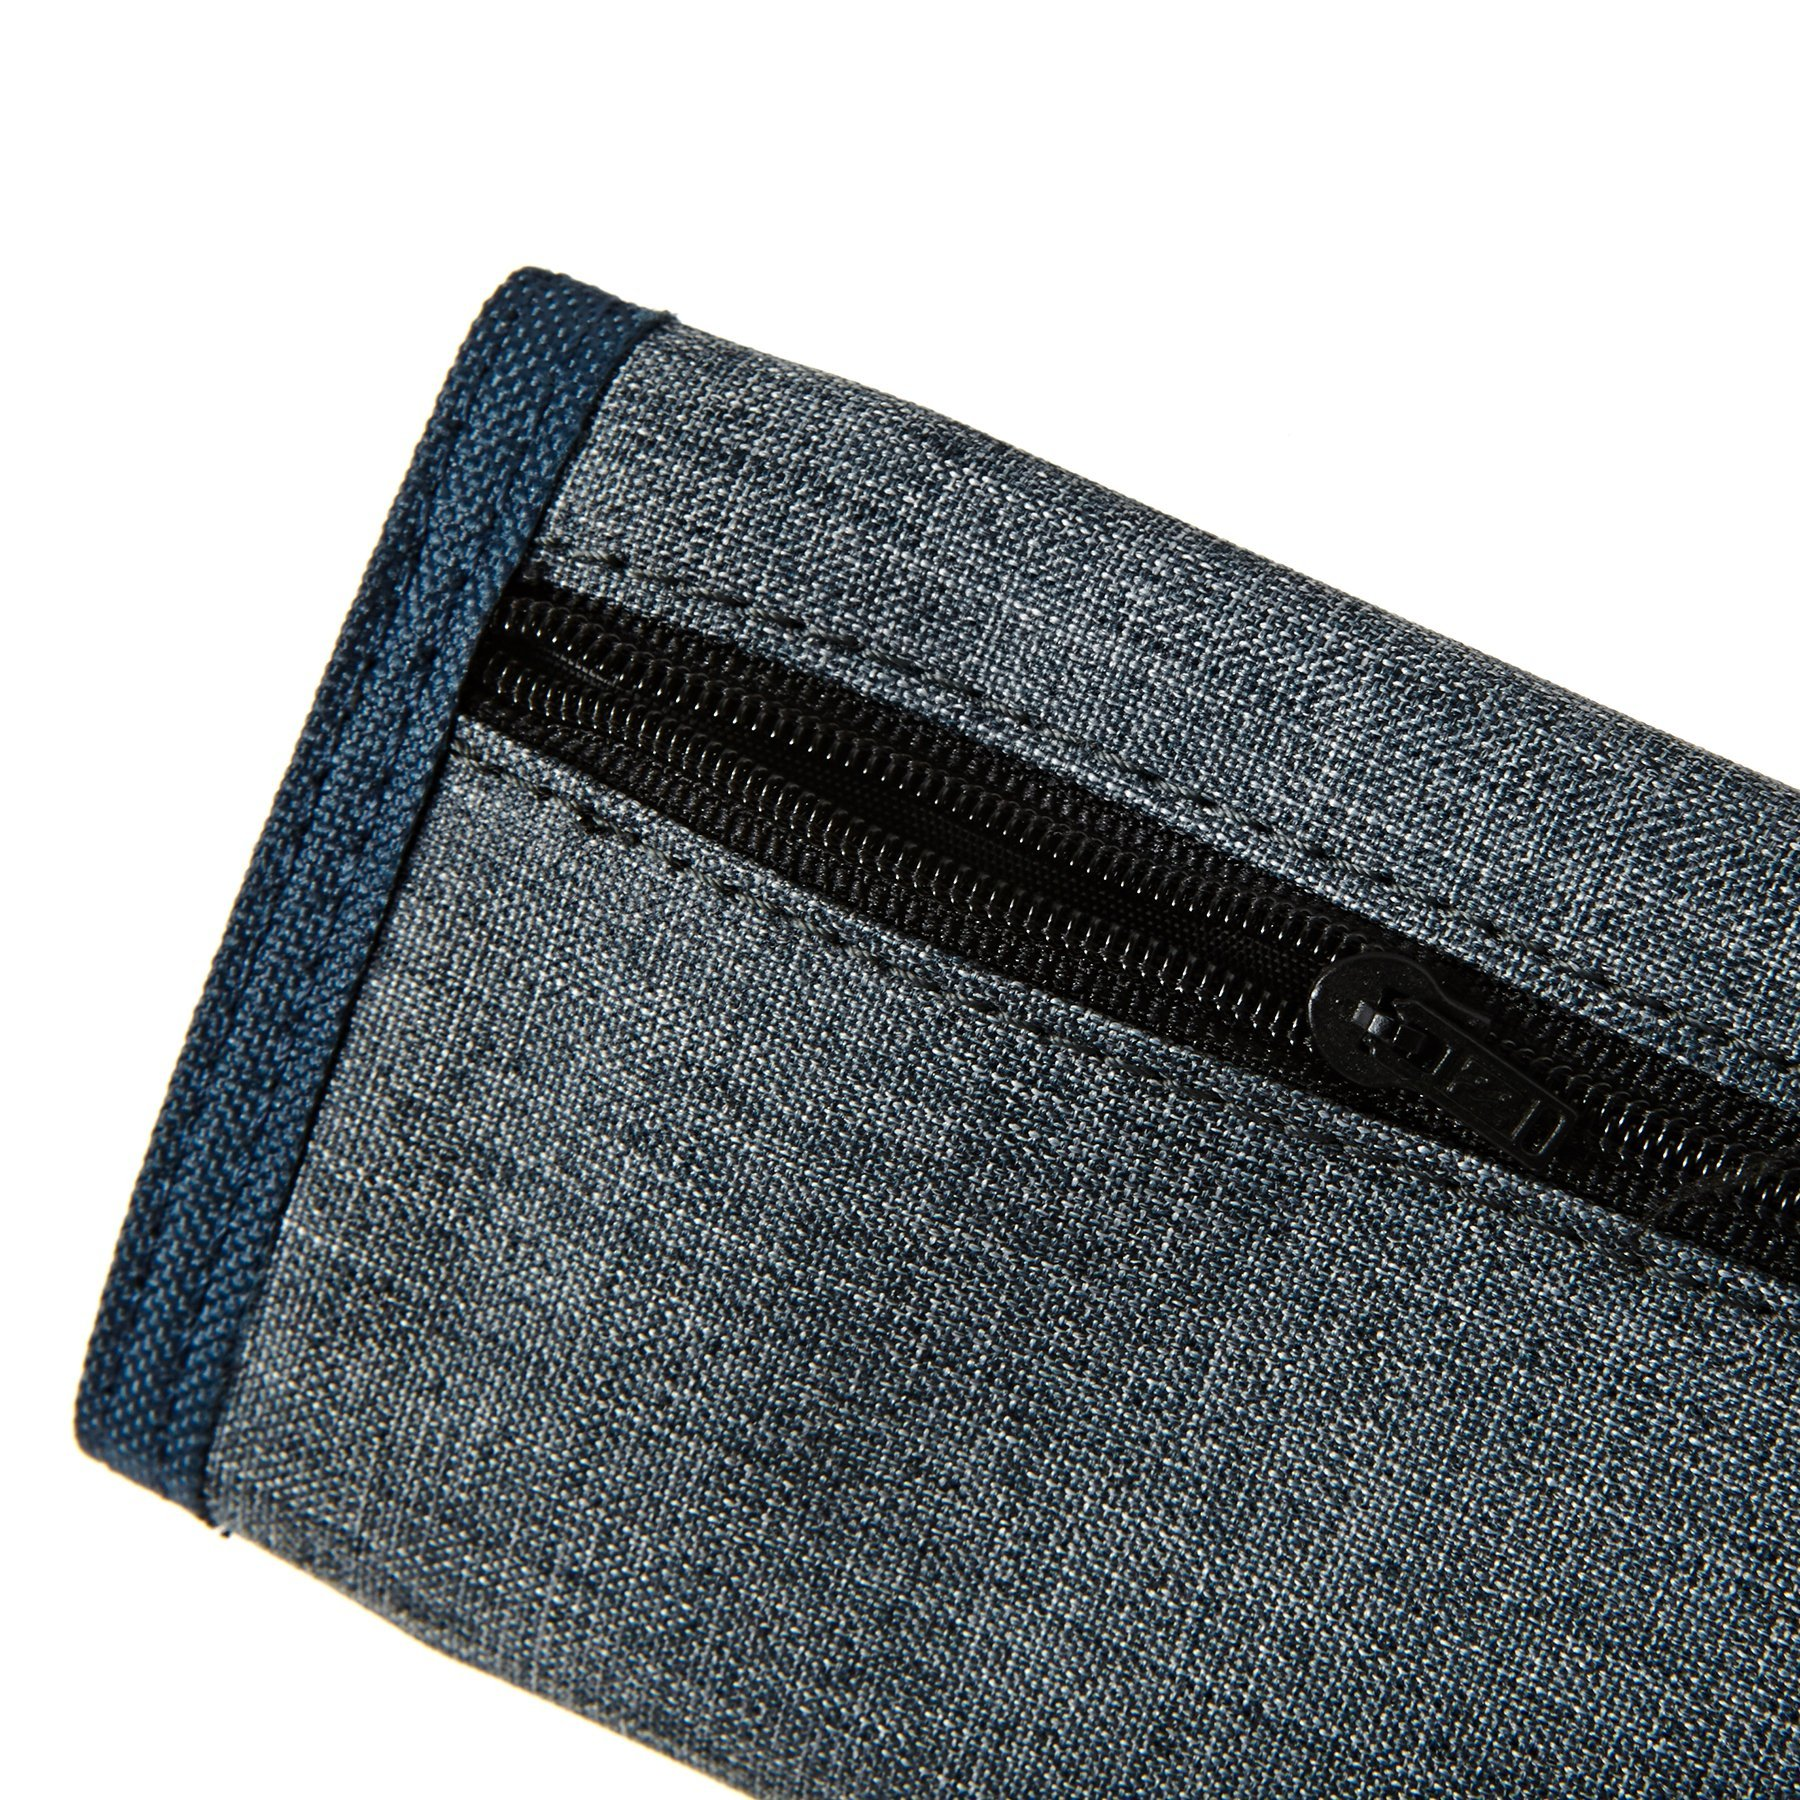 Billabong Atom Wallet One Size Dark Slate Heather by Billabong (Image #6)